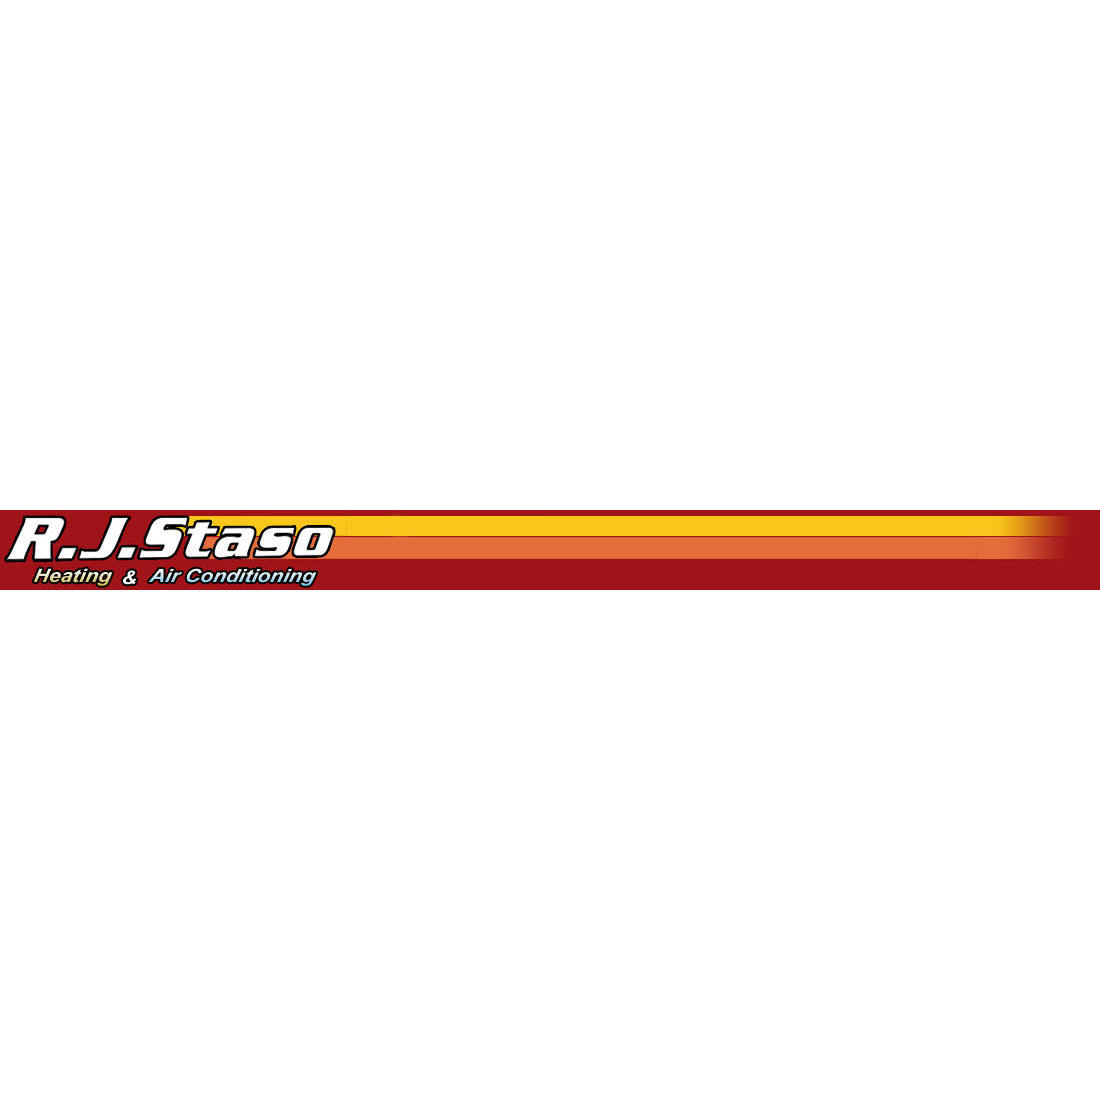 R.J. Staso Heating & Air Conditioning image 0